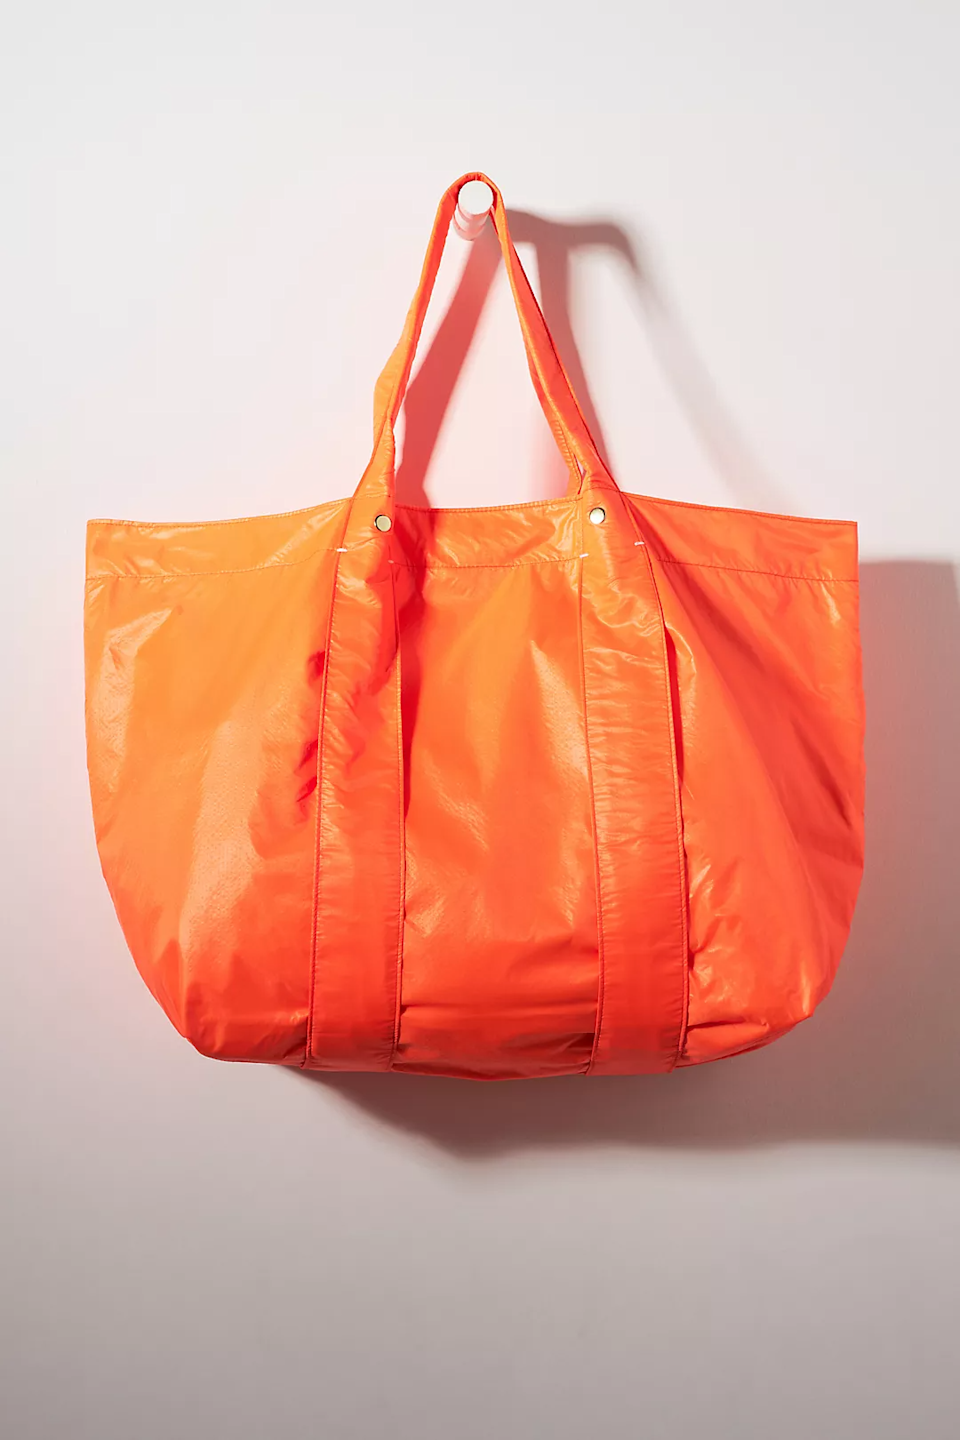 """<h2>Clare V. Trop Tote Bag</h2><br>It would be hard to lose this fun and statement-making tote. <br><br>Shop <a href=""""https://www.anthropologie.com/brands/clare-v"""" rel=""""nofollow noopener"""" target=""""_blank"""" data-ylk=""""slk:Clare V."""" class=""""link rapid-noclick-resp"""">Clare V.</a><br><br><strong>Clare V.</strong> Trop Tote Bag, $, available at <a href=""""https://go.skimresources.com/?id=30283X879131&url=https%3A%2F%2Fwww.anthropologie.com%2Fshop%2Fclare-v-trop-tote-bag"""" rel=""""nofollow noopener"""" target=""""_blank"""" data-ylk=""""slk:Anthropologie"""" class=""""link rapid-noclick-resp"""">Anthropologie</a>"""